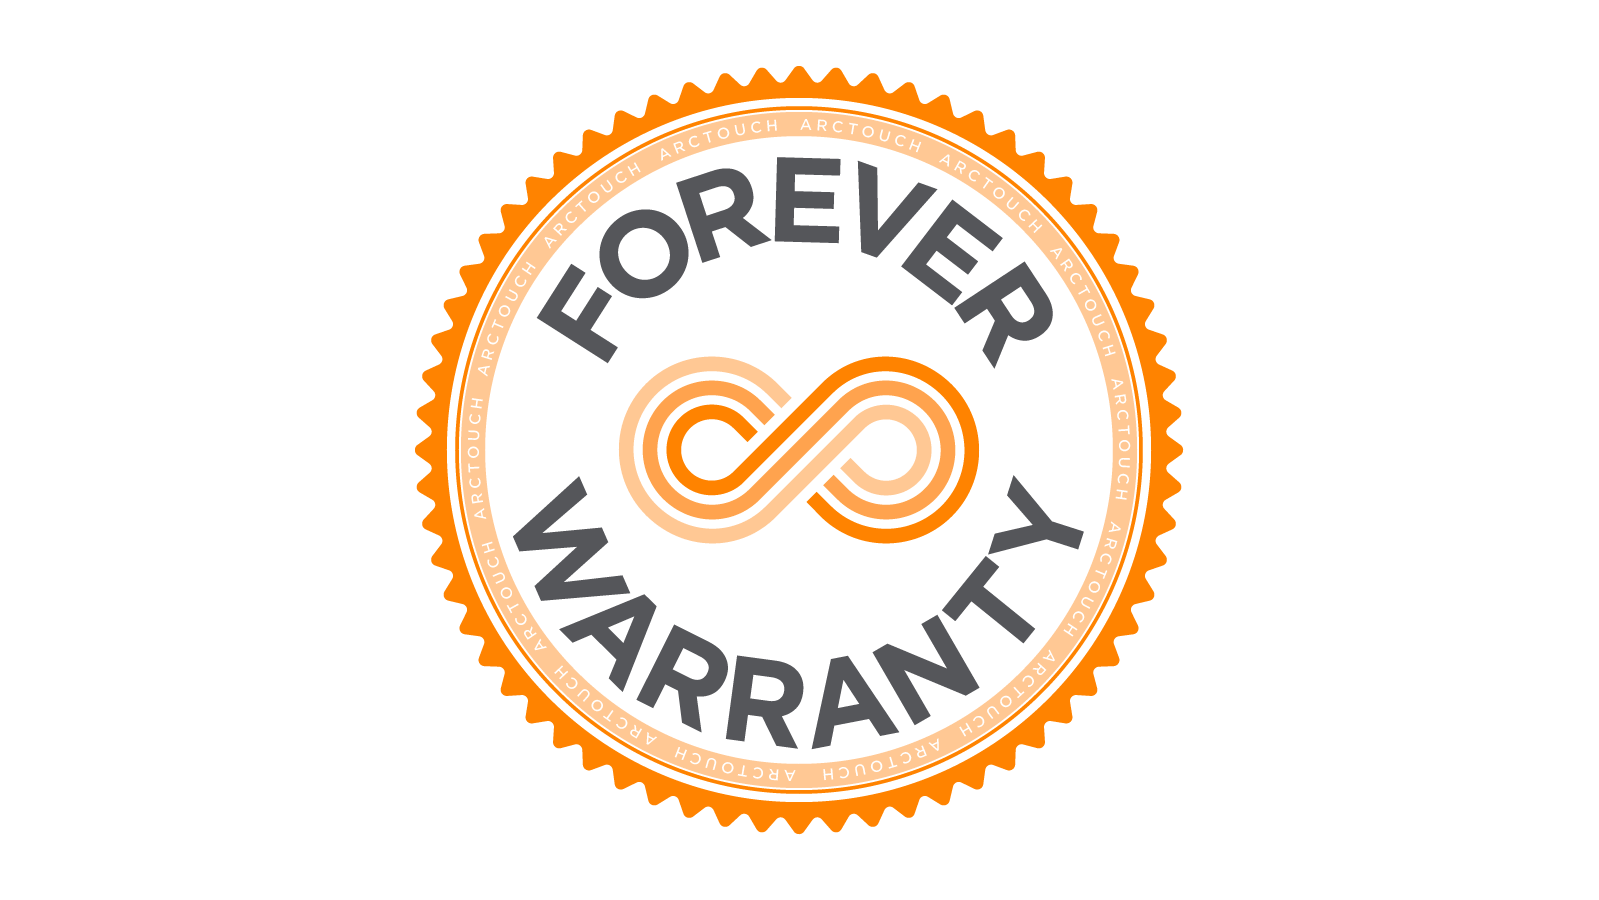 ArcTouch Forever Warranty logo